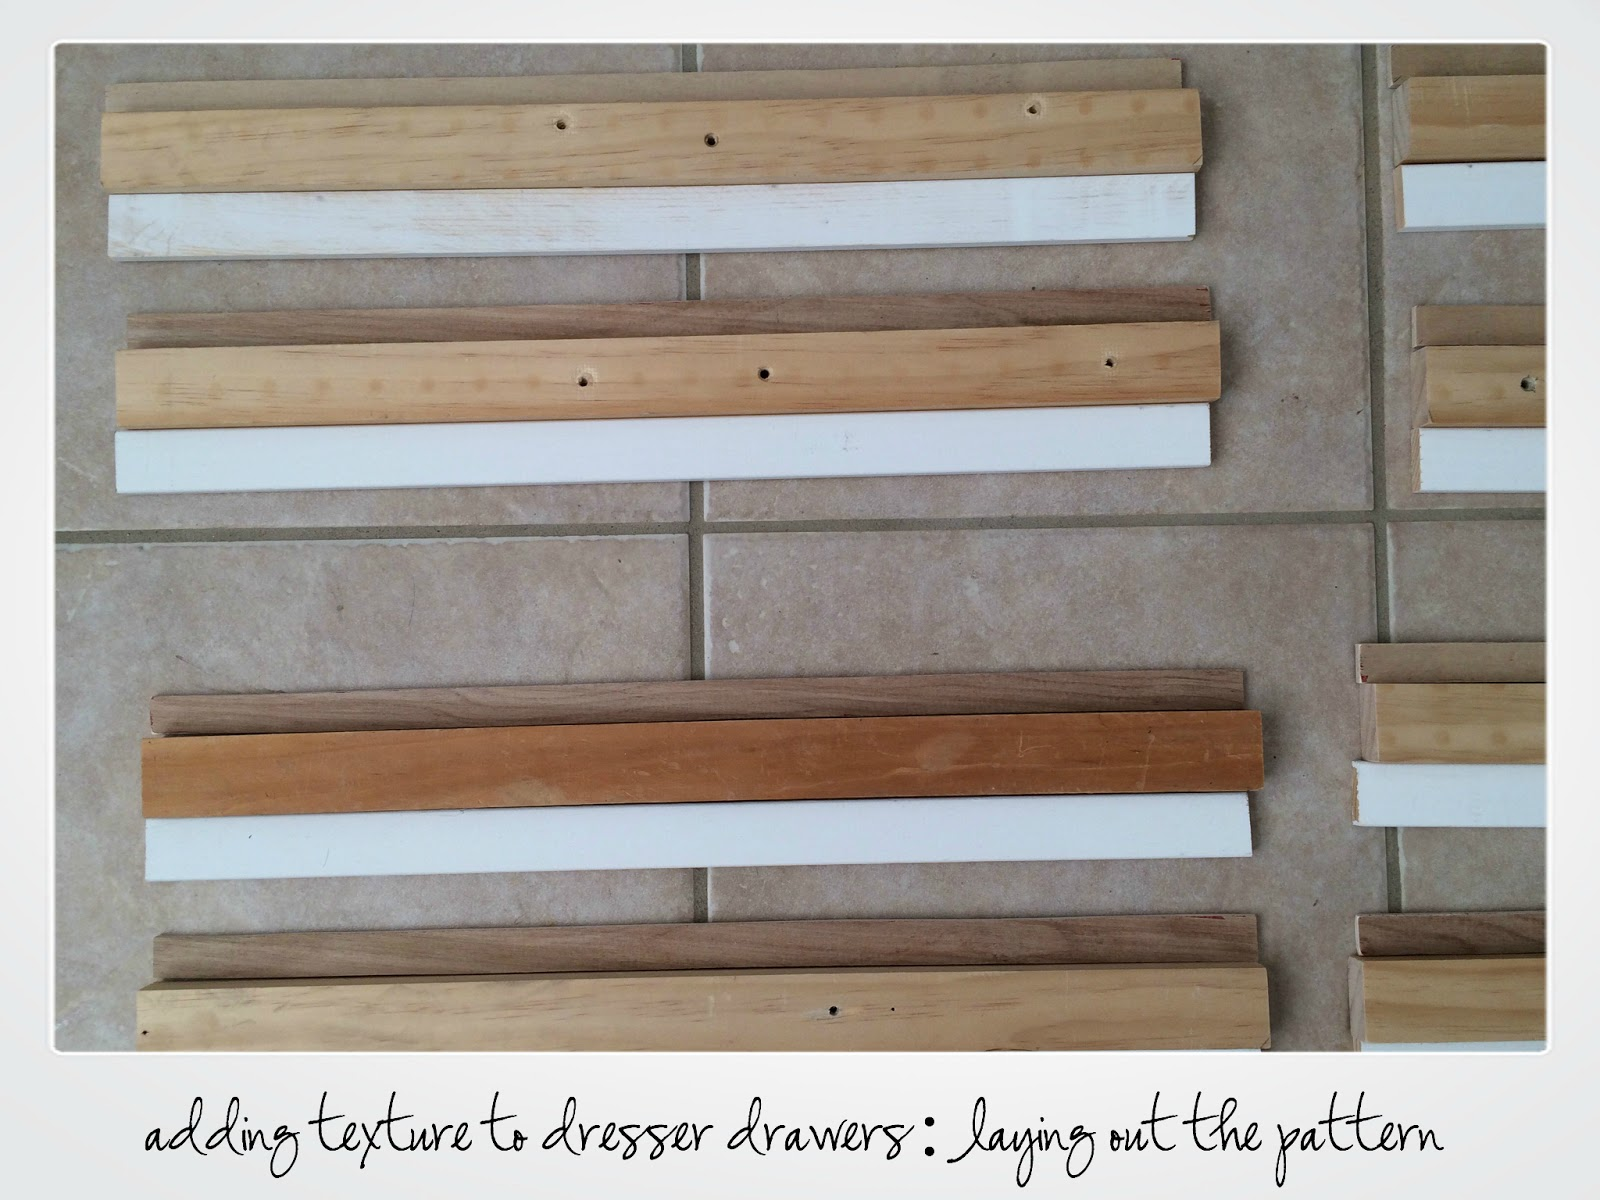 adding texture to dresser drawers, make a statement, stacked wood drawer fronts, how to lay out a pattern